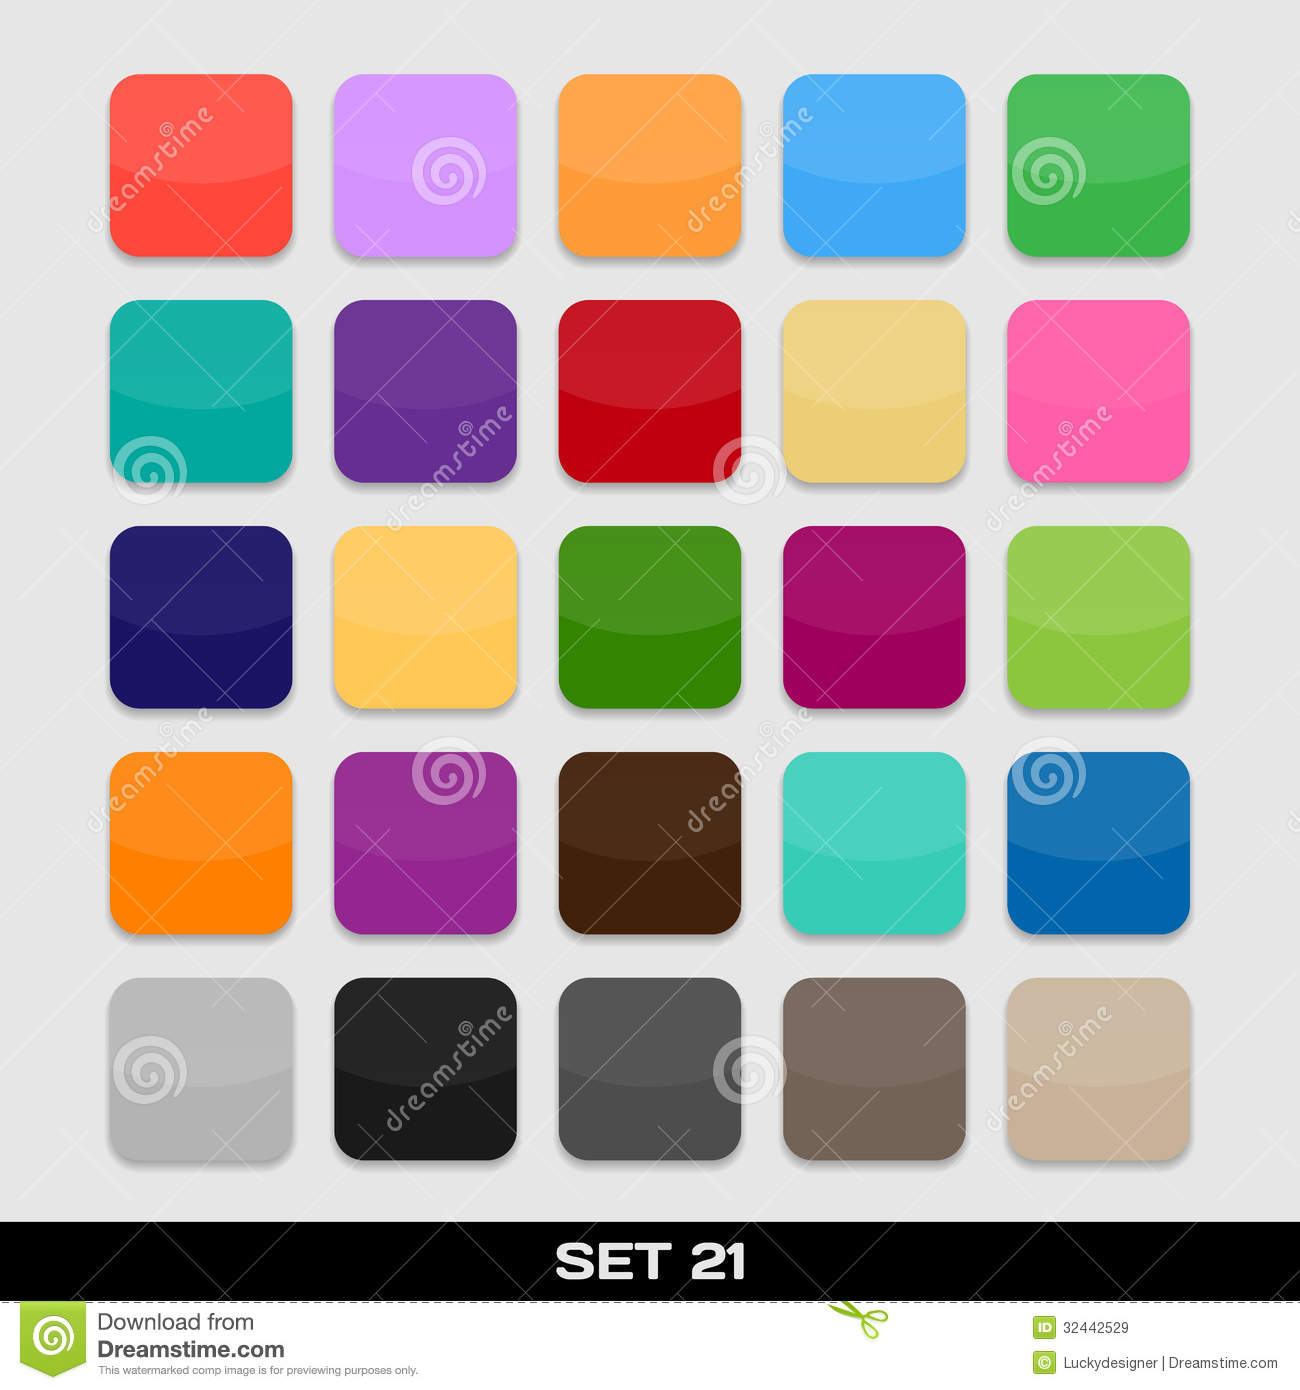 Set Of Colorful App Icon Templates, Frames, Backgrounds. Set 21 ...